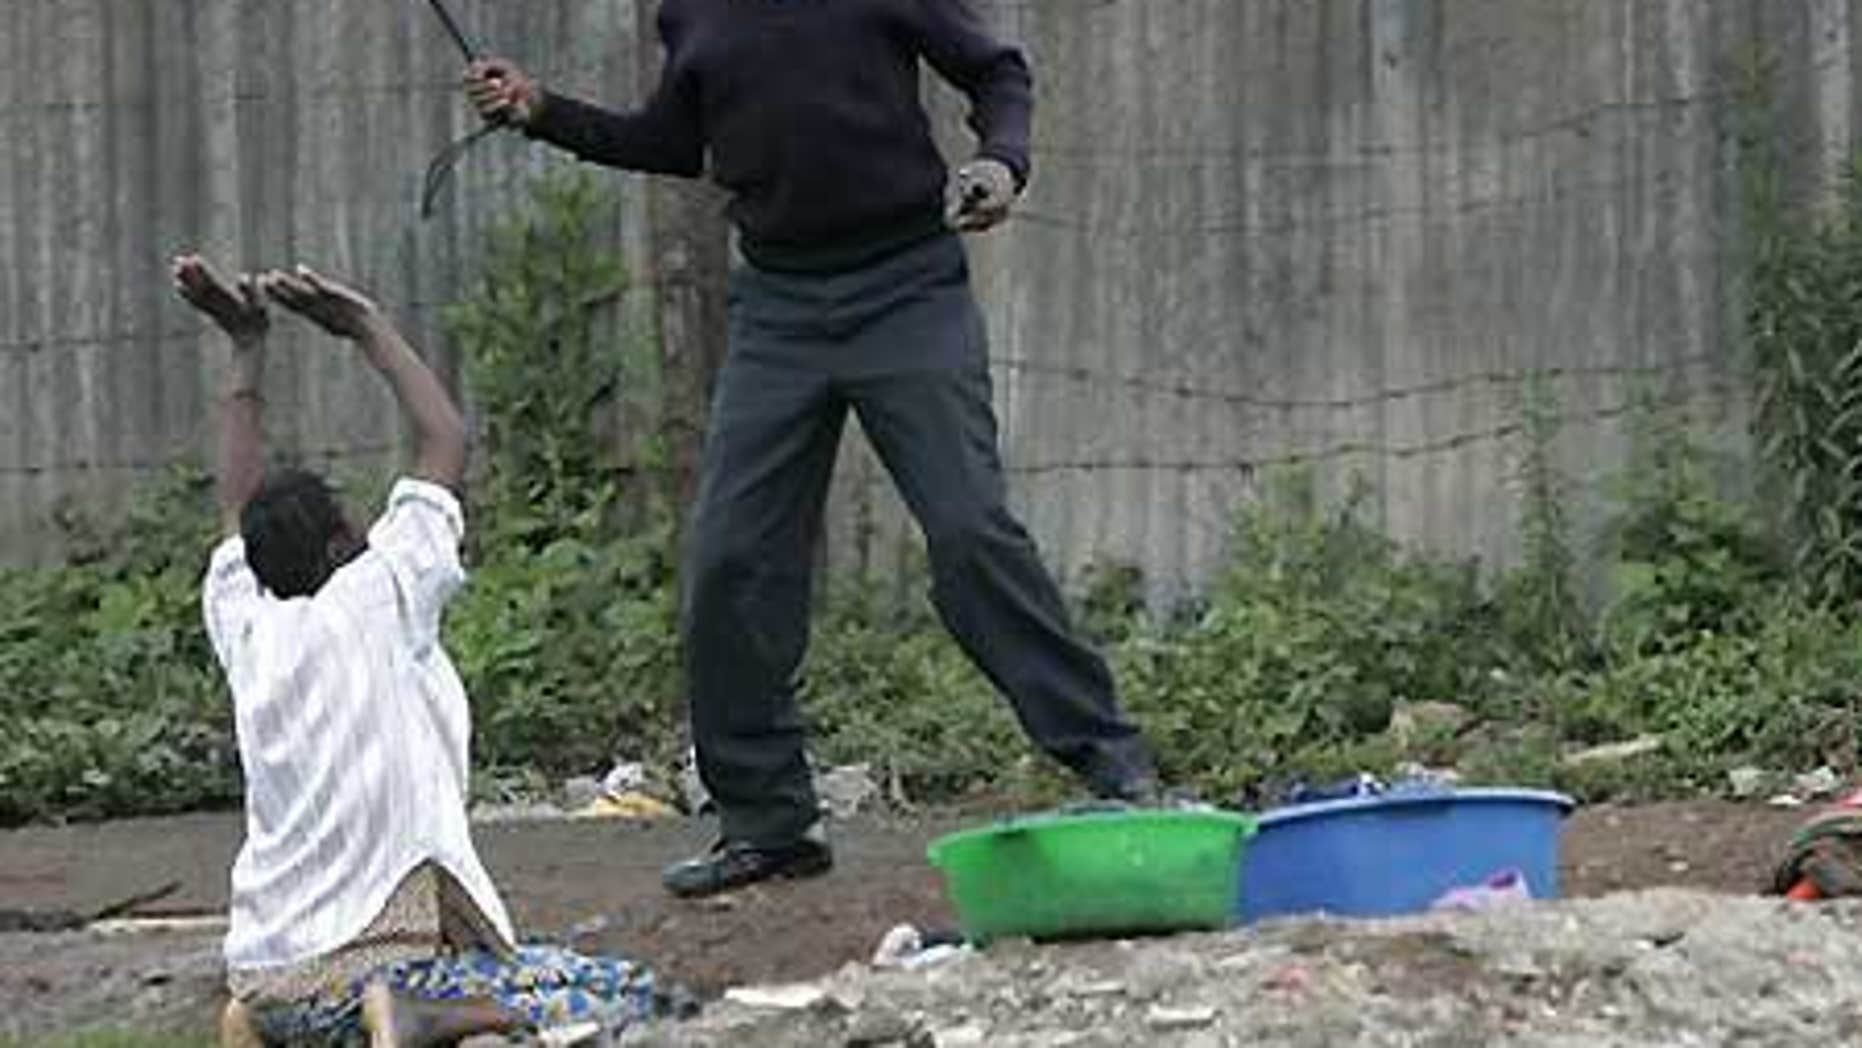 File: A woman who was washing her laundry when police fired tear gas begs a policeman not to beat her in Nairobi slum.